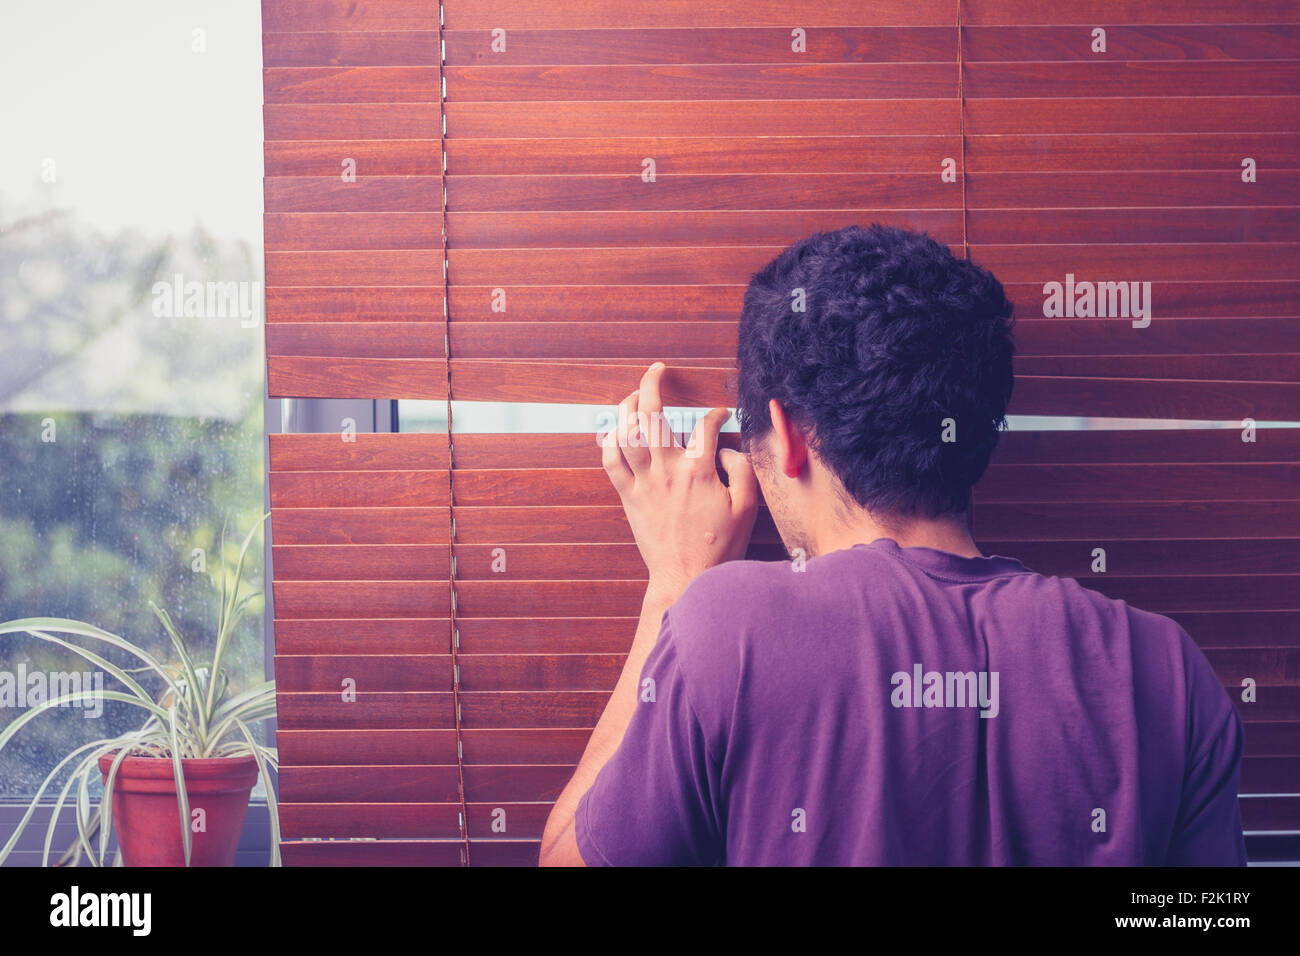 Young man peeping out through curtain blinds - Stock Image